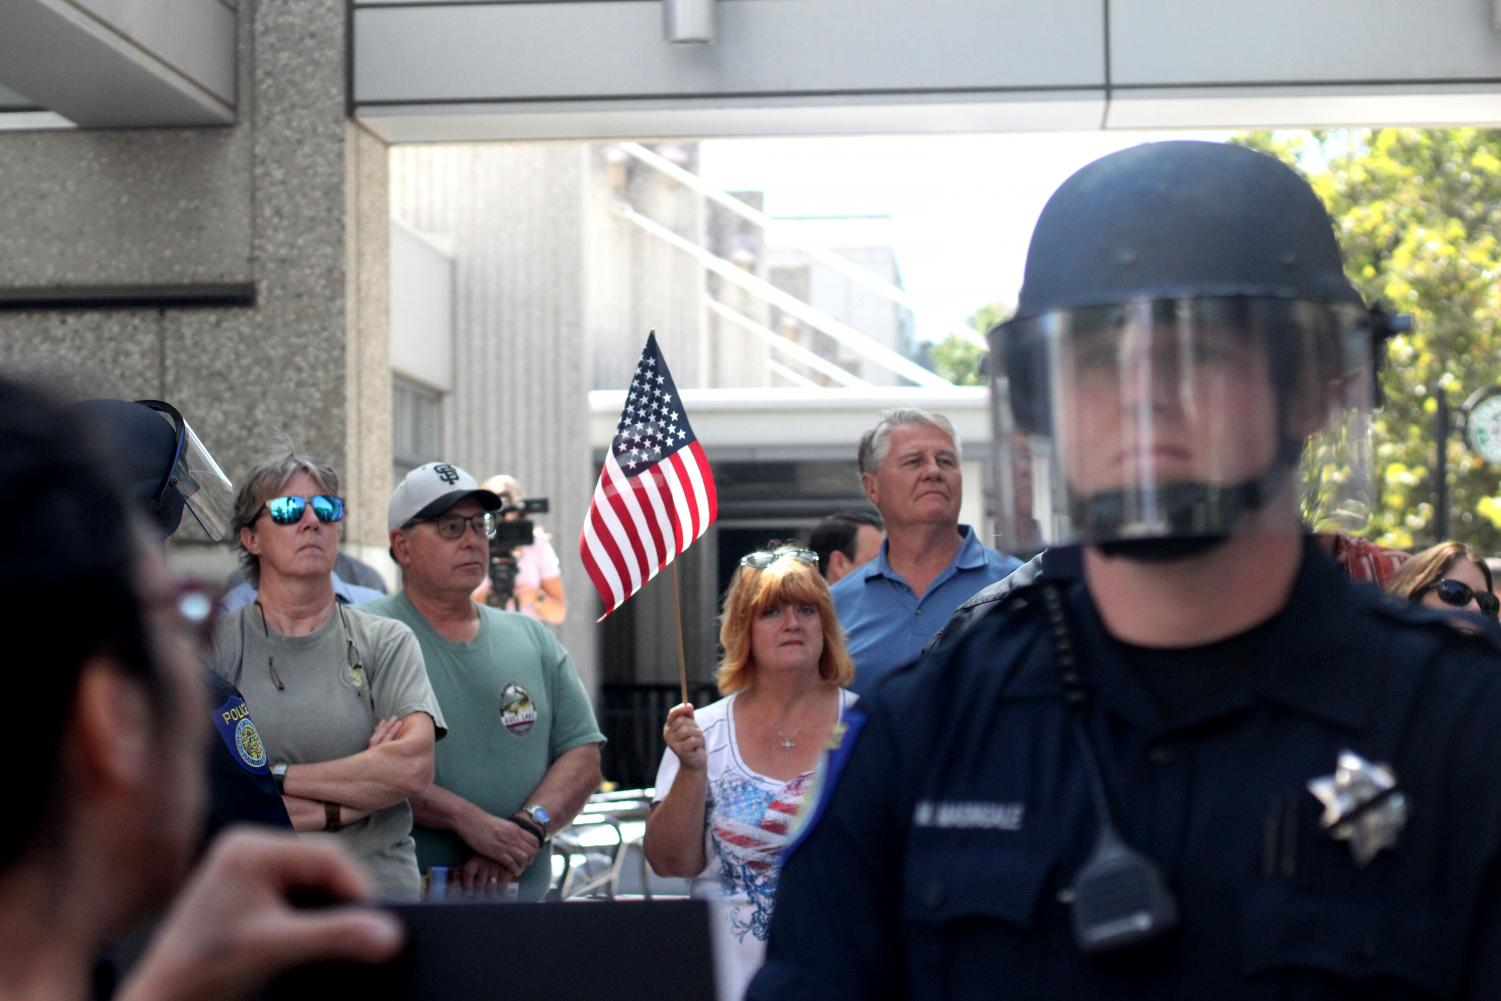 A+counter-protester+holds+an+American+flag+at+the+Black+Lives+Matter+Protest+Tuesday+Sept.+18+in+downtown+Sacramento.+Two+groups+of+protesters+clashed+outside+of+a+statewide+law+enforcement+expo.